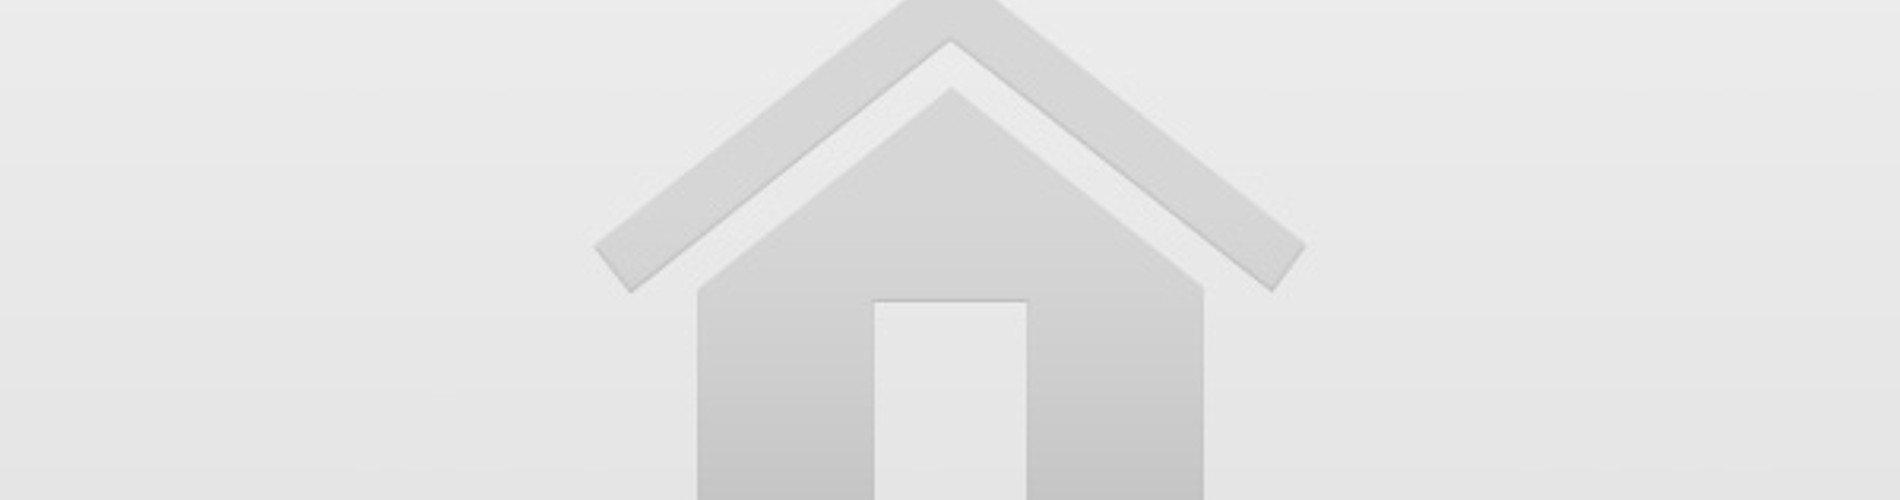 Vacation Rental Low Price 4 Bedroom Villa With Nice View Over The Sea, Private Pool, Wifi, BBQ